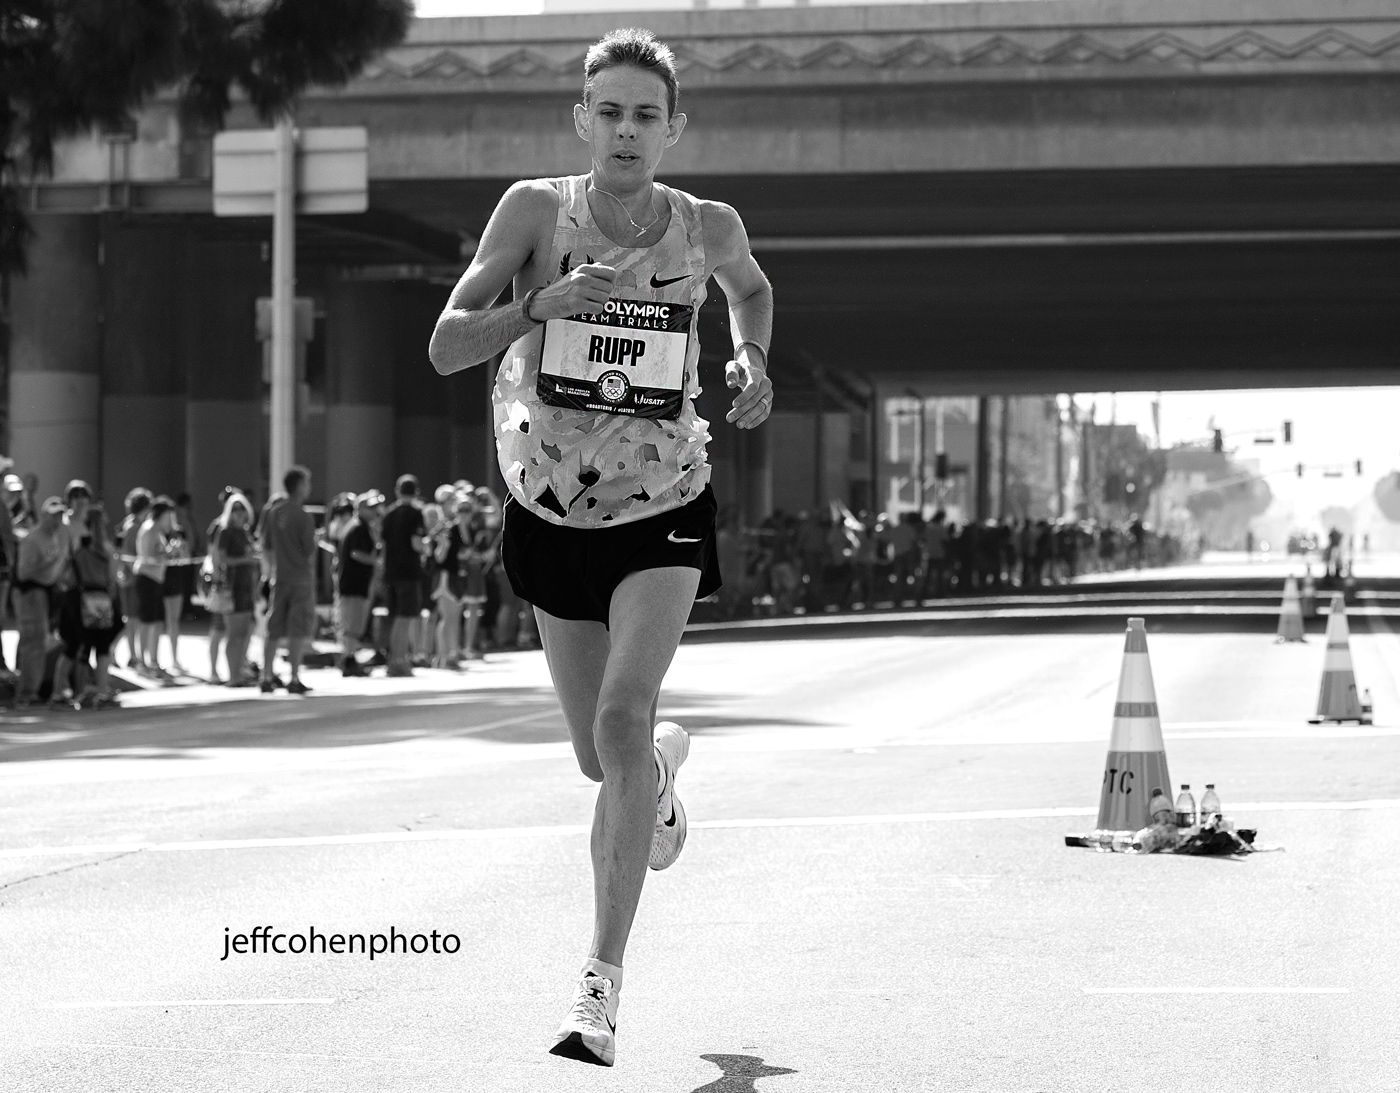 332_1r2016_us_trials_marathon__galen_rupp_bw_jeff_cohen_photo_2414_web.jpg